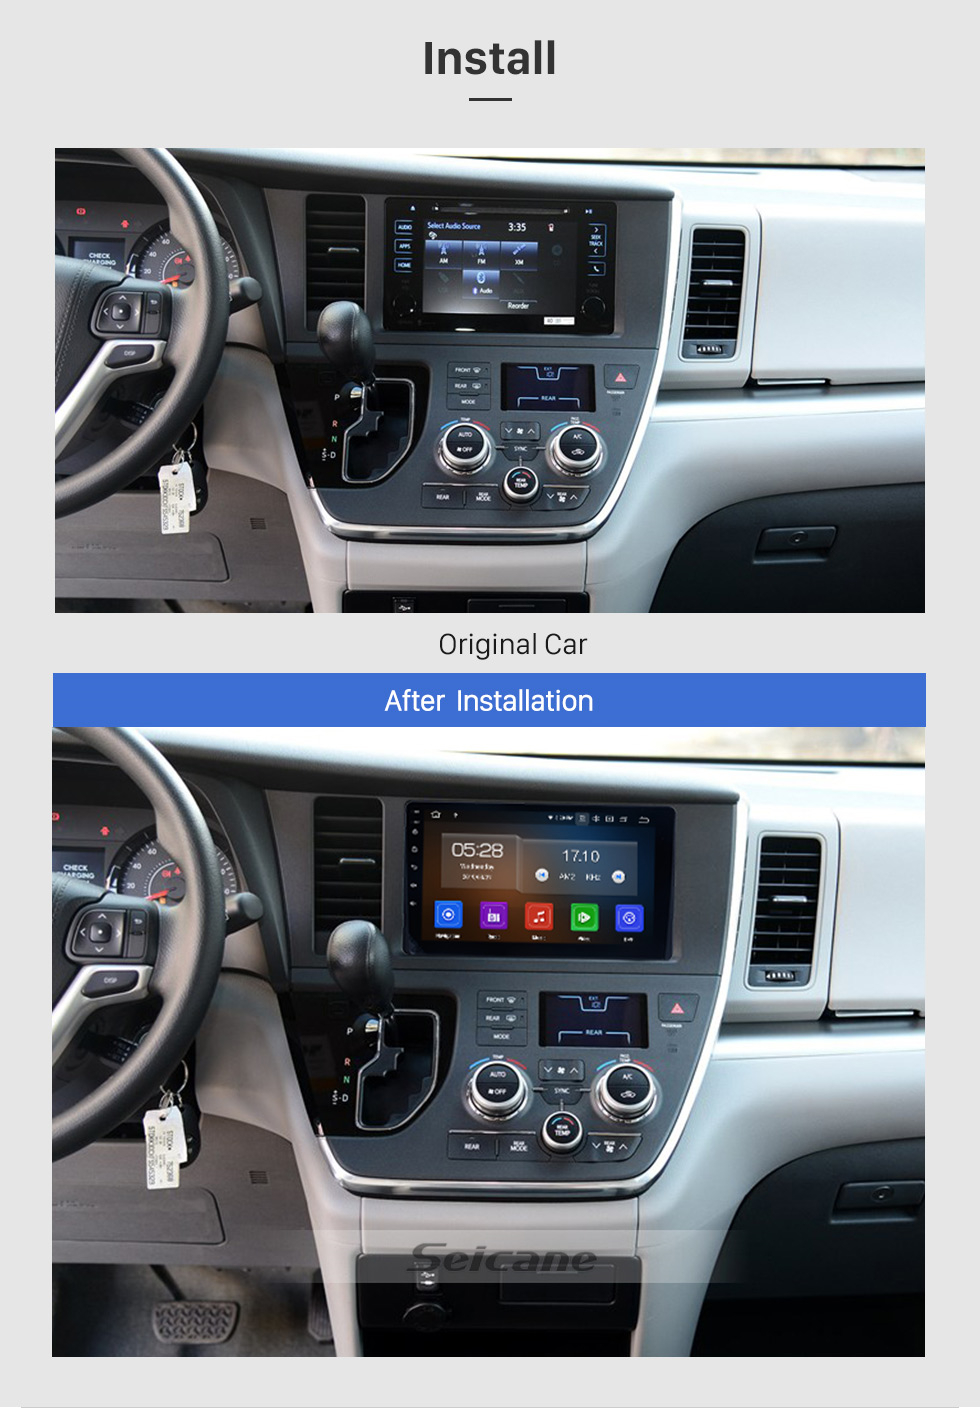 Seicane Aftermarket Android 9.0 Radio GPS Navigation system for 2015-2018 Toyota Sienna with Capacitive Touch Screen TPMS DVR OBDII Control USB Bluetooth 3G WiFi Video AUX Rear camera